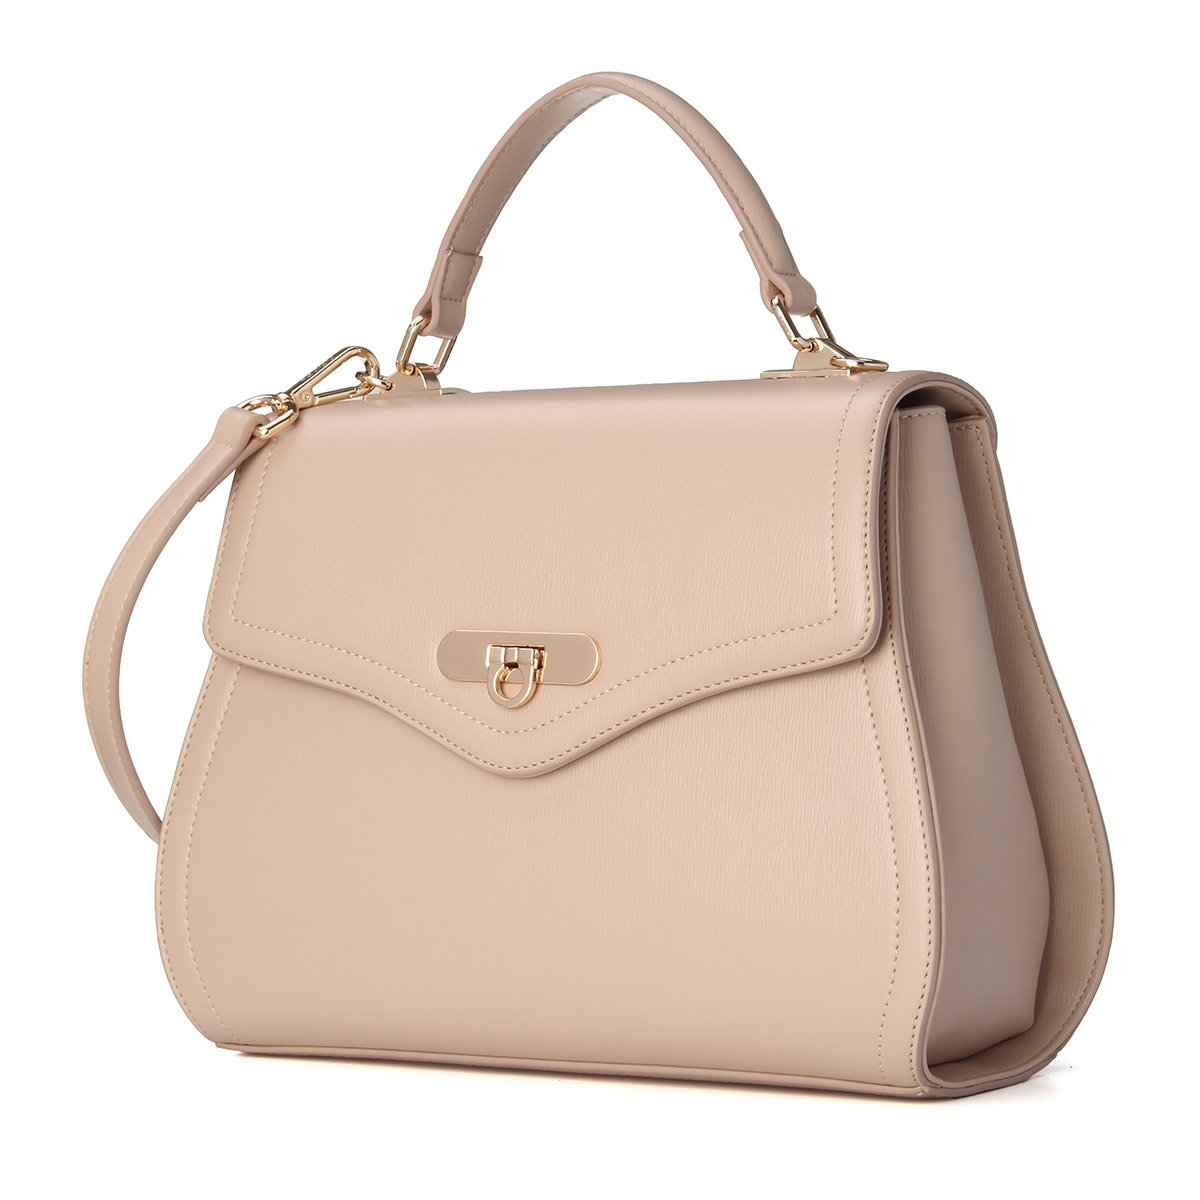 Kadell Women Leather Handbag Purse Shell Shape Top Handle Bag with Removable Strap Beige